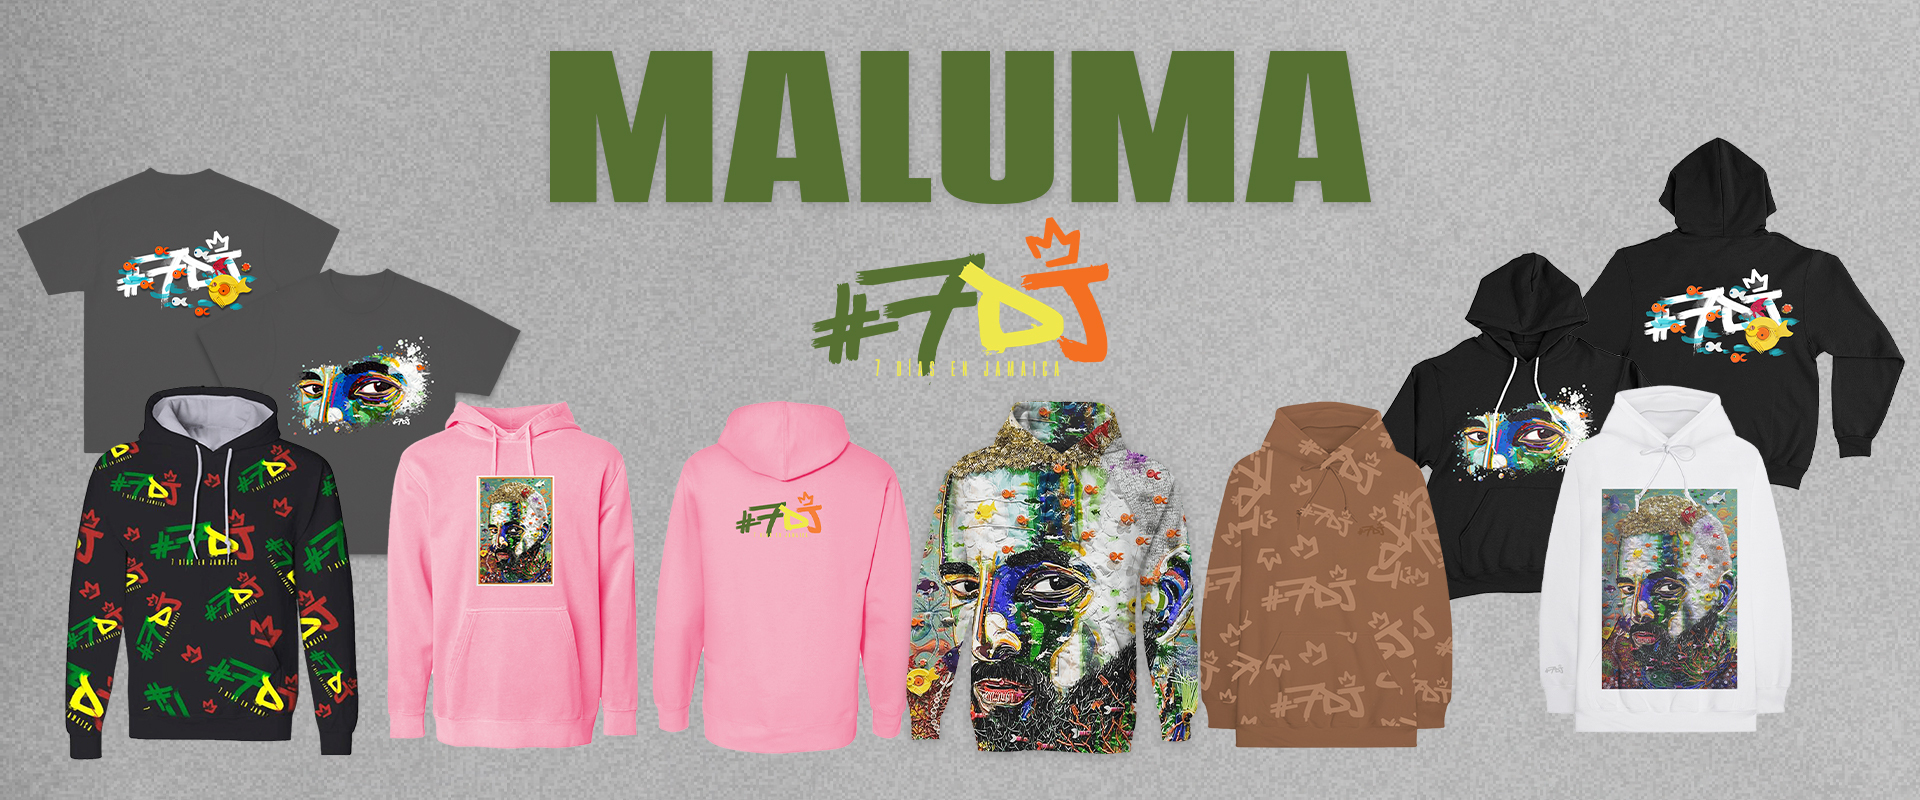 "Maluma ""7 Days In Jamaica"" Merch Available Now!"